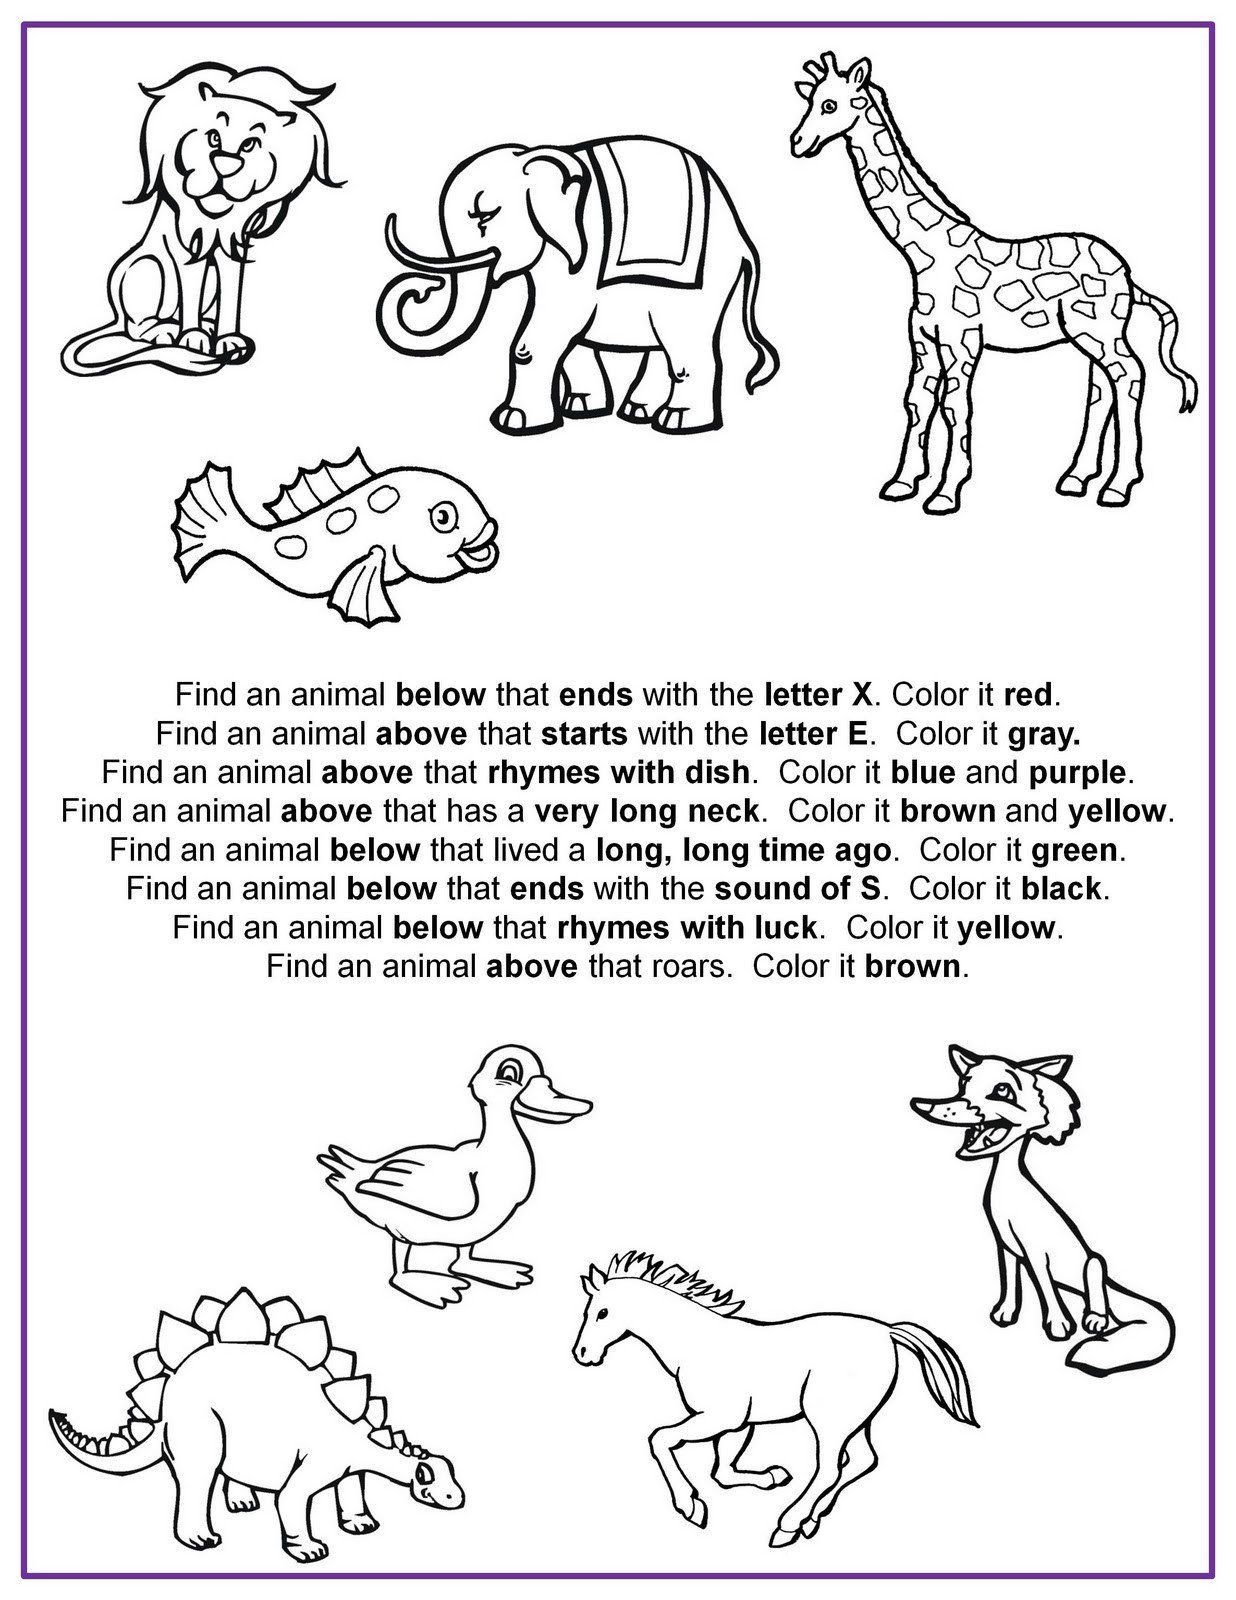 Following Directions Worksheet for Kindergarten